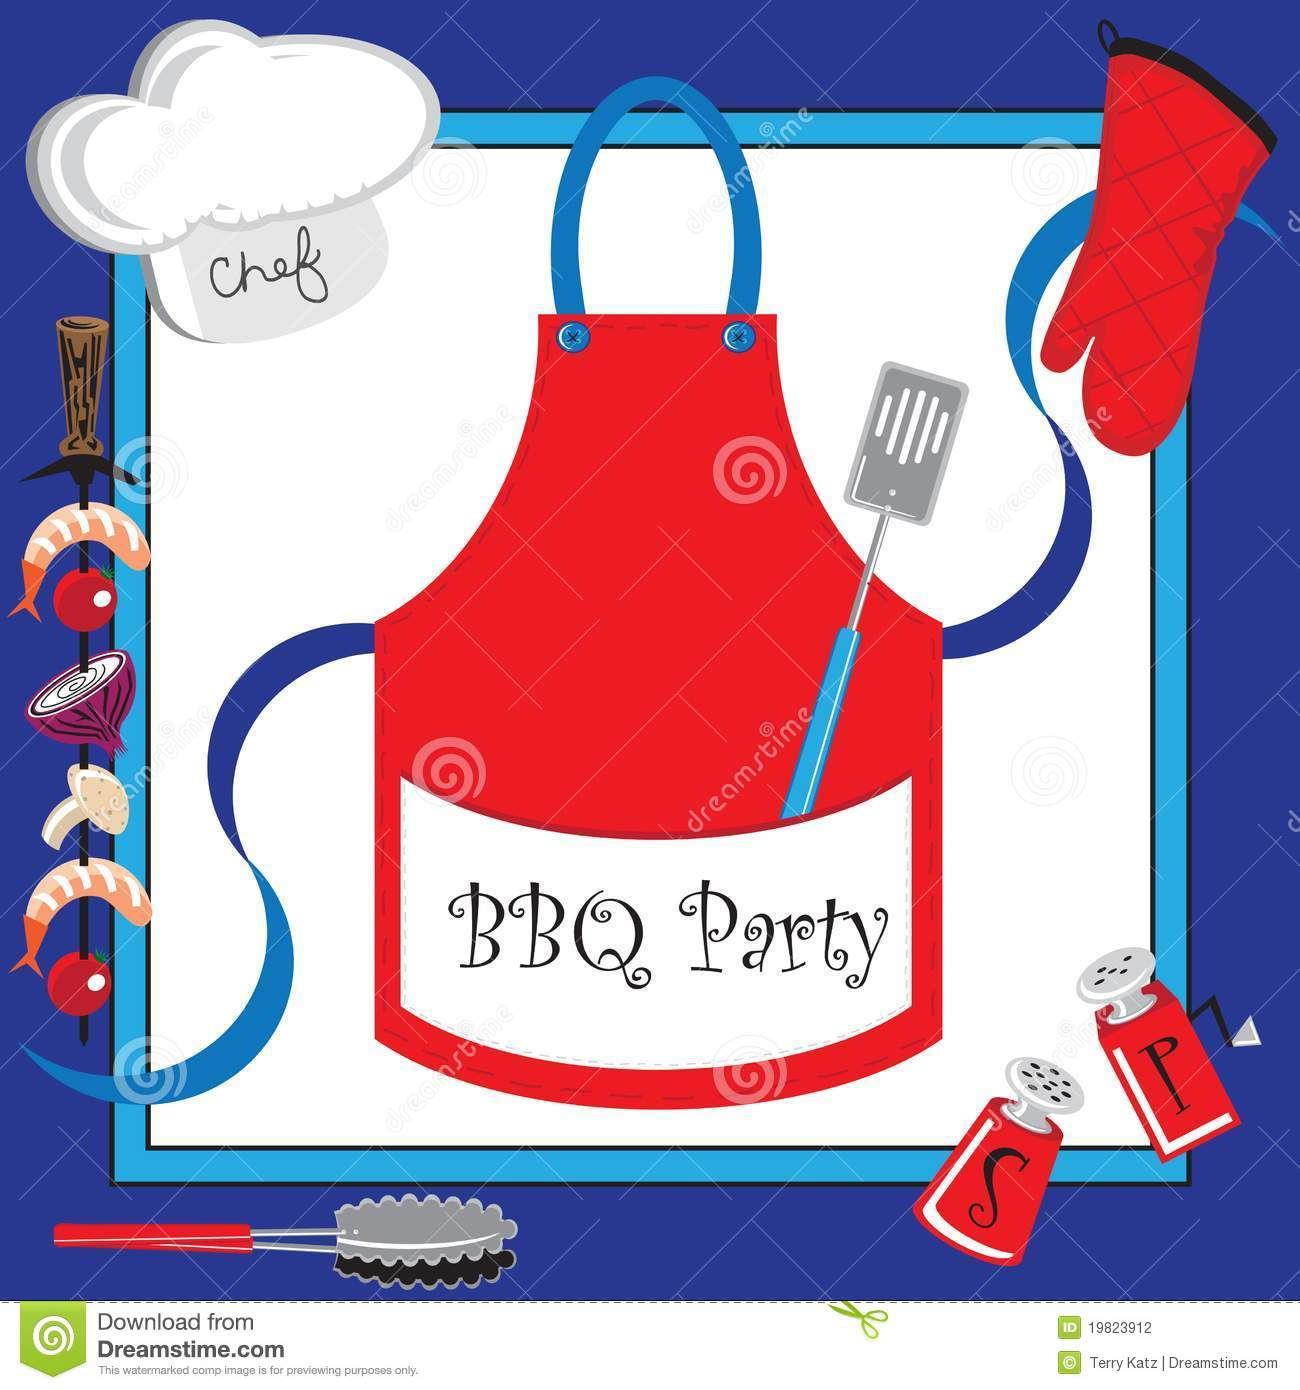 Barbecue Party Invitation With Large Apron Stock Vector